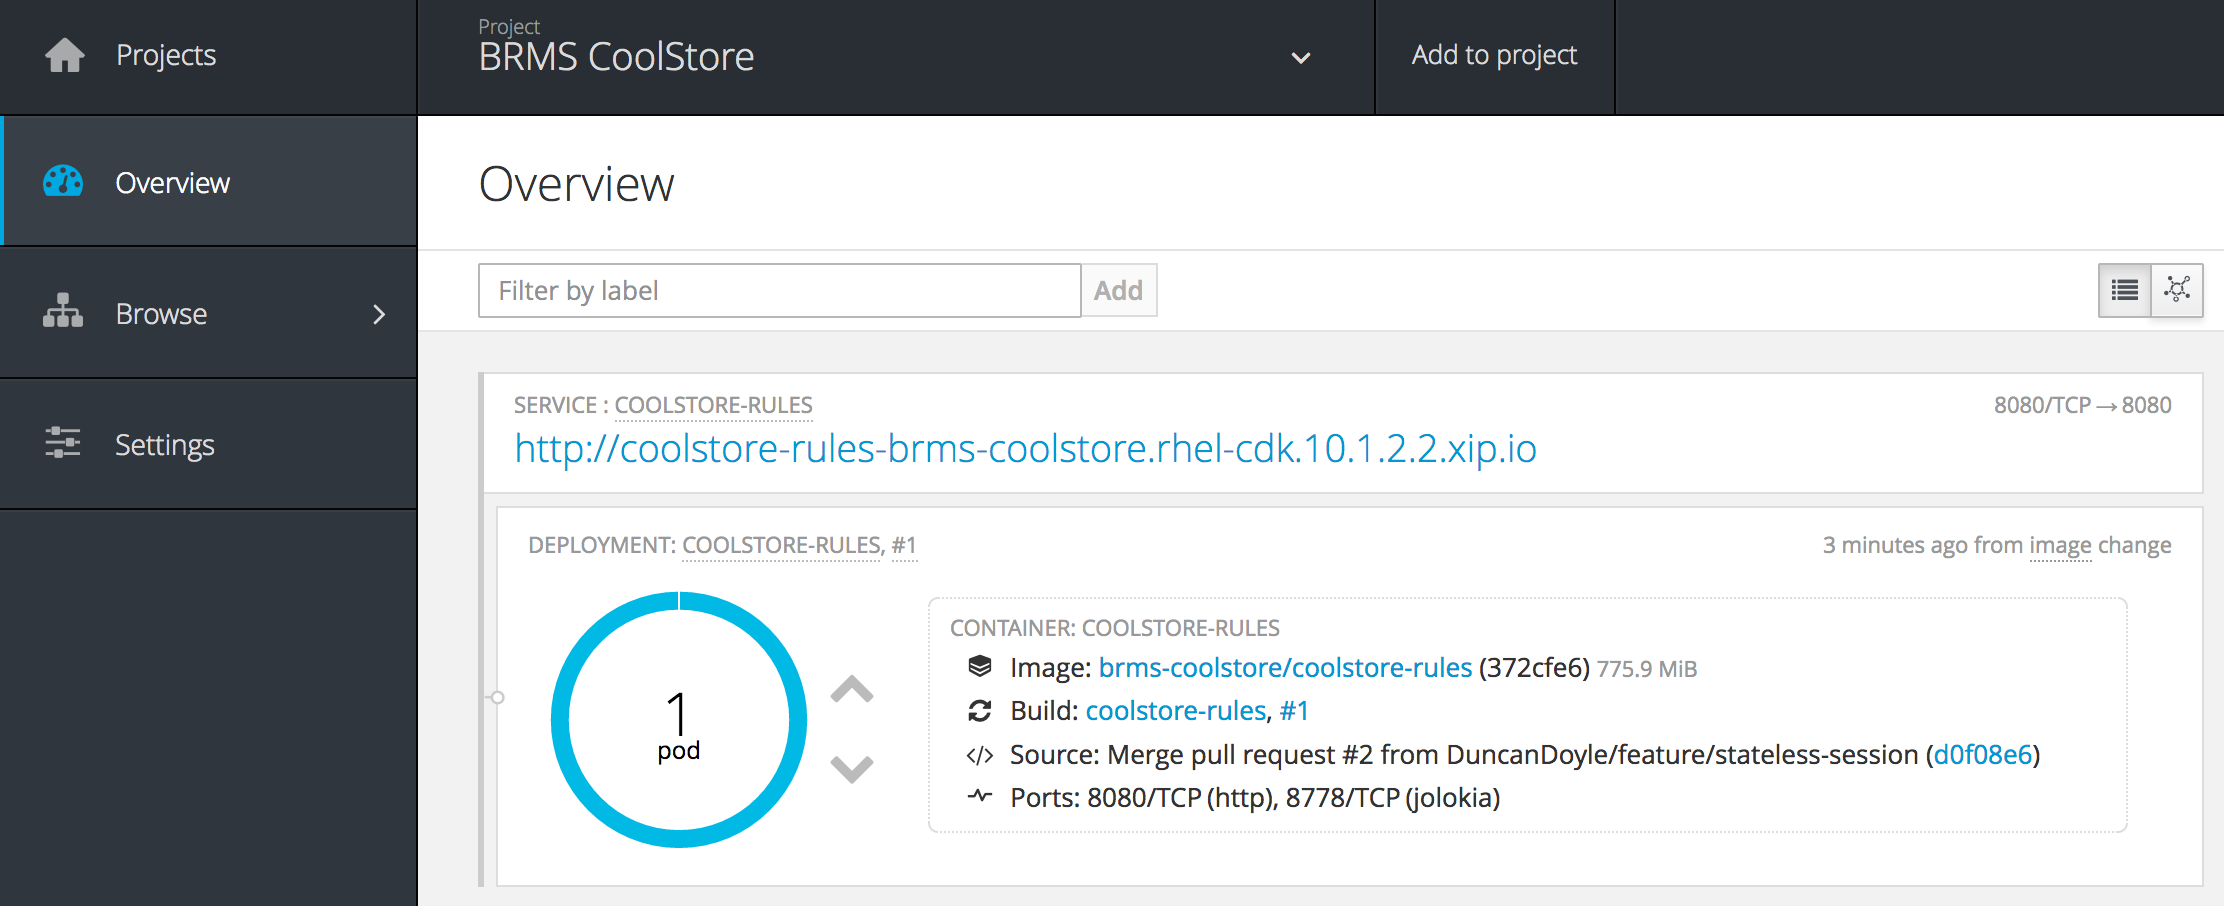 openshift-brms-coolstore-pod